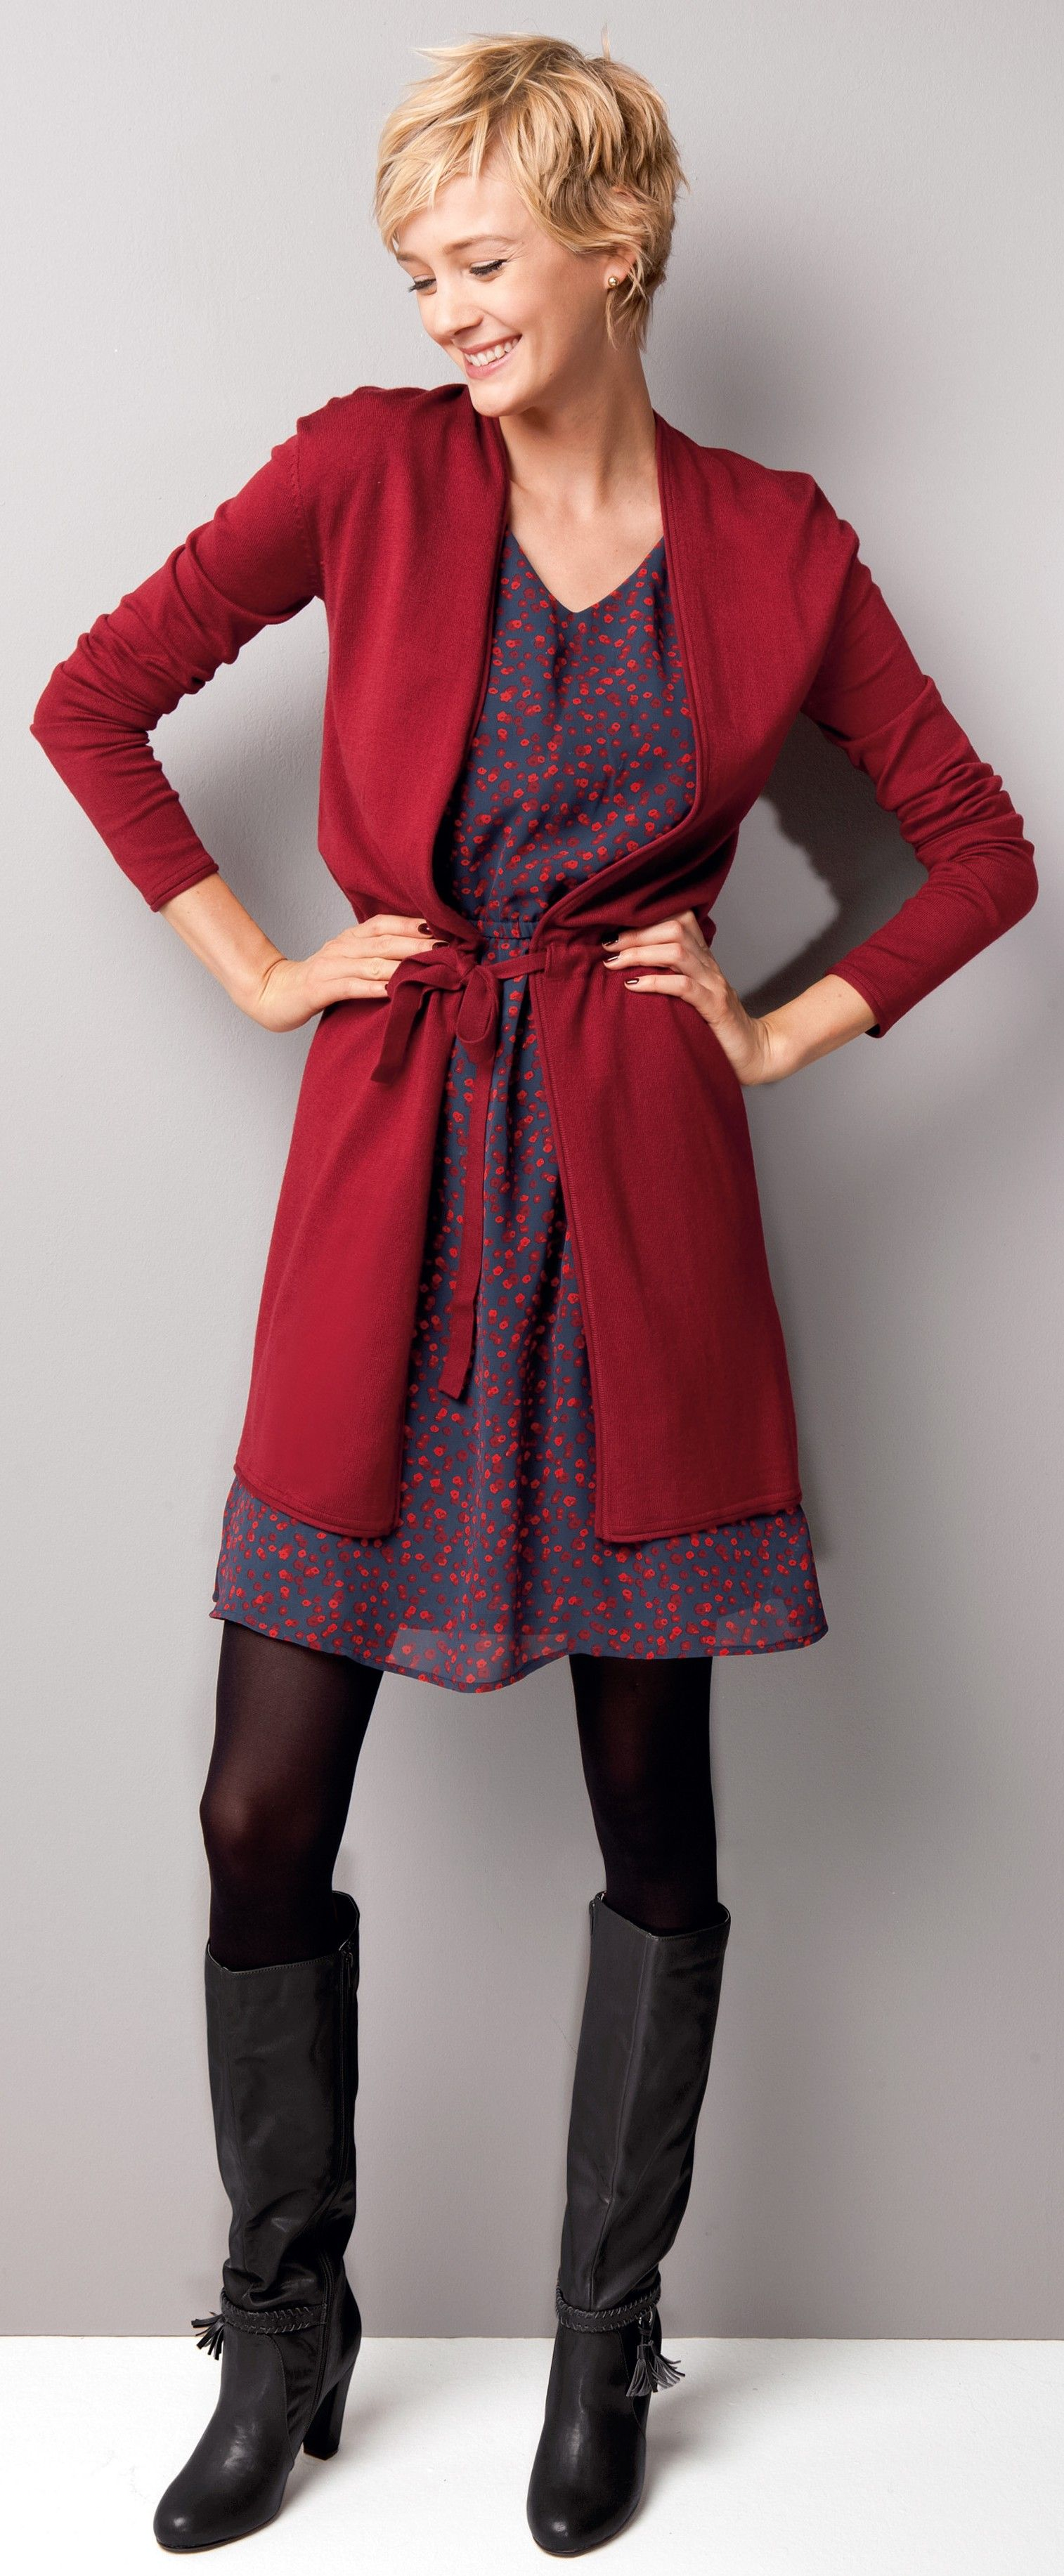 Cool Fall Patterned Outfits for Fall 2013 / Winter 2014 ...